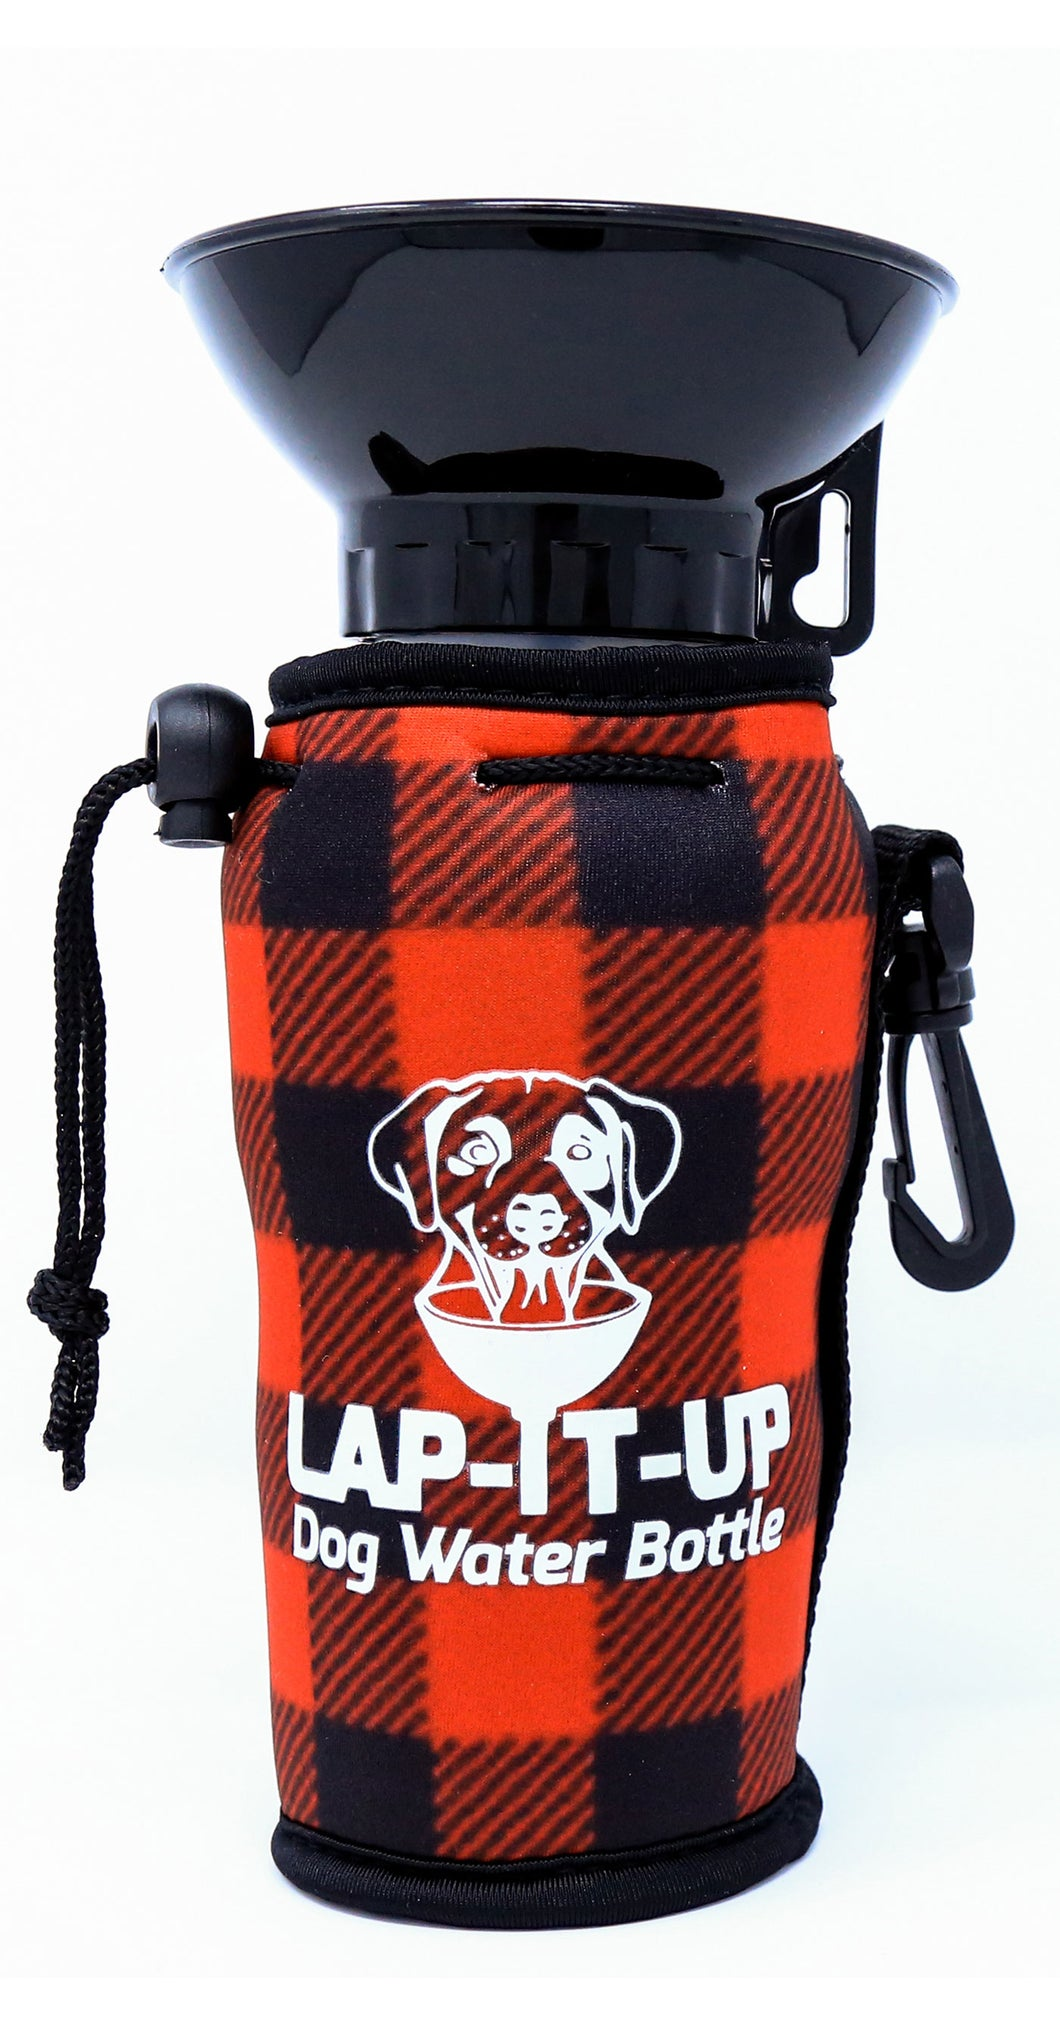 Lap-It-Up Dog Water Bottle - Plaid - Red & Black